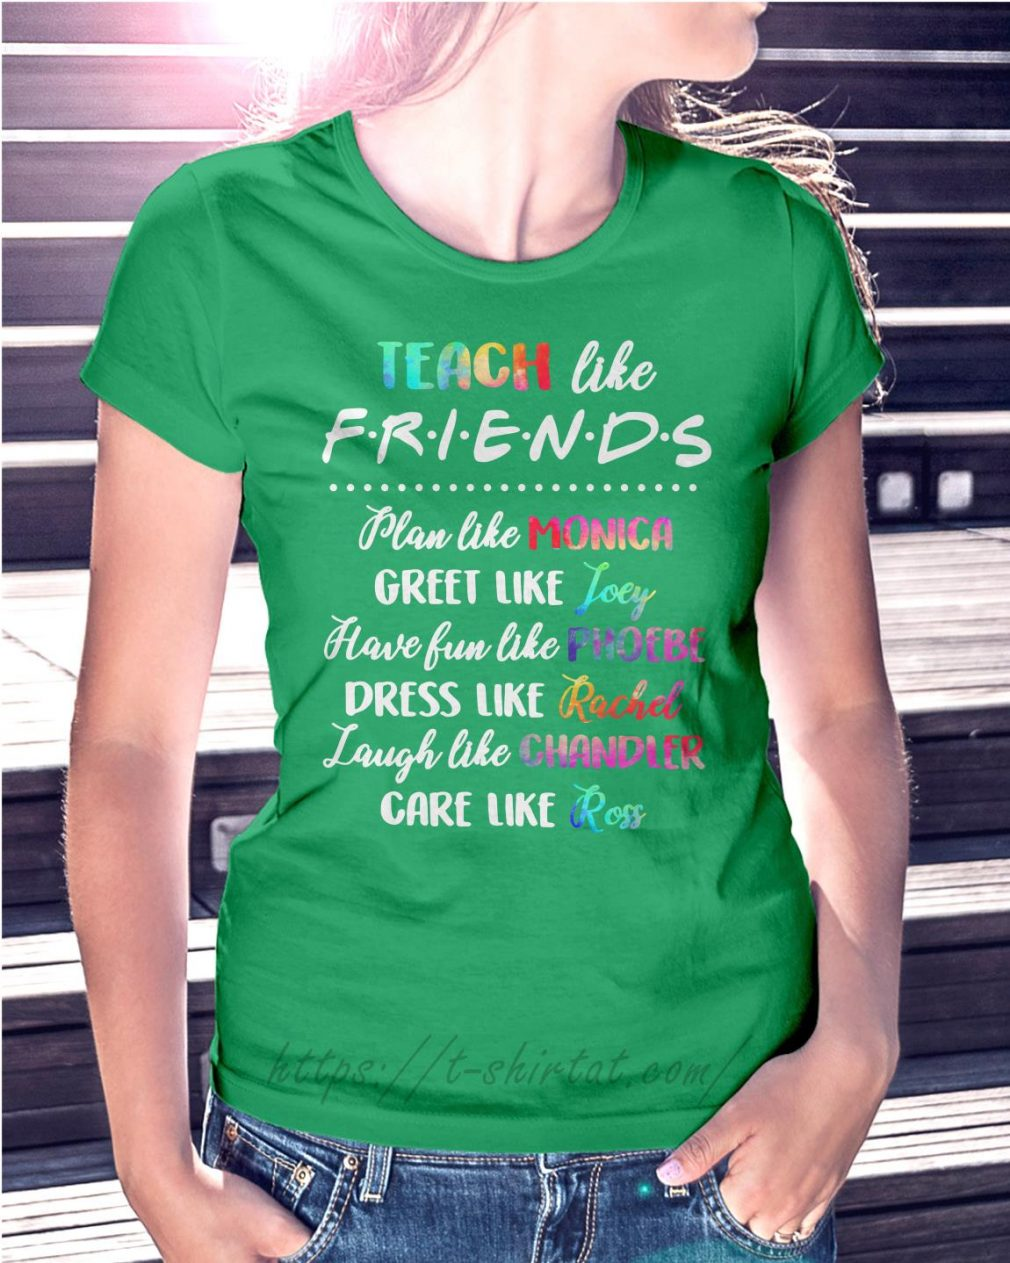 Teach like friends plan like Monica greet like Joey Ladies Tee green